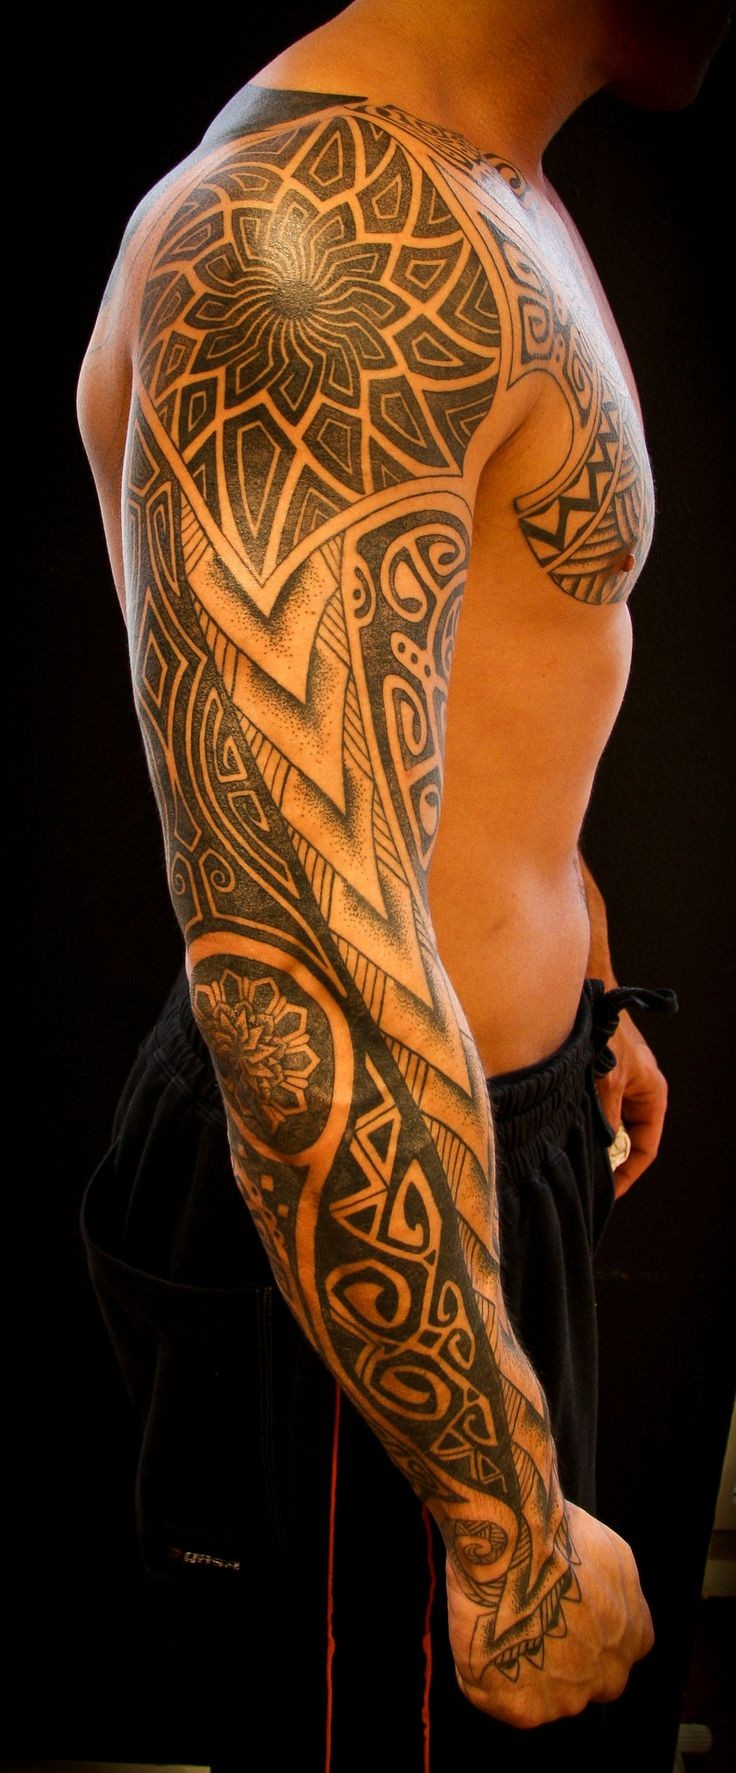 Great painted massive black ink Polynesian ornaments tattoo on sleeve